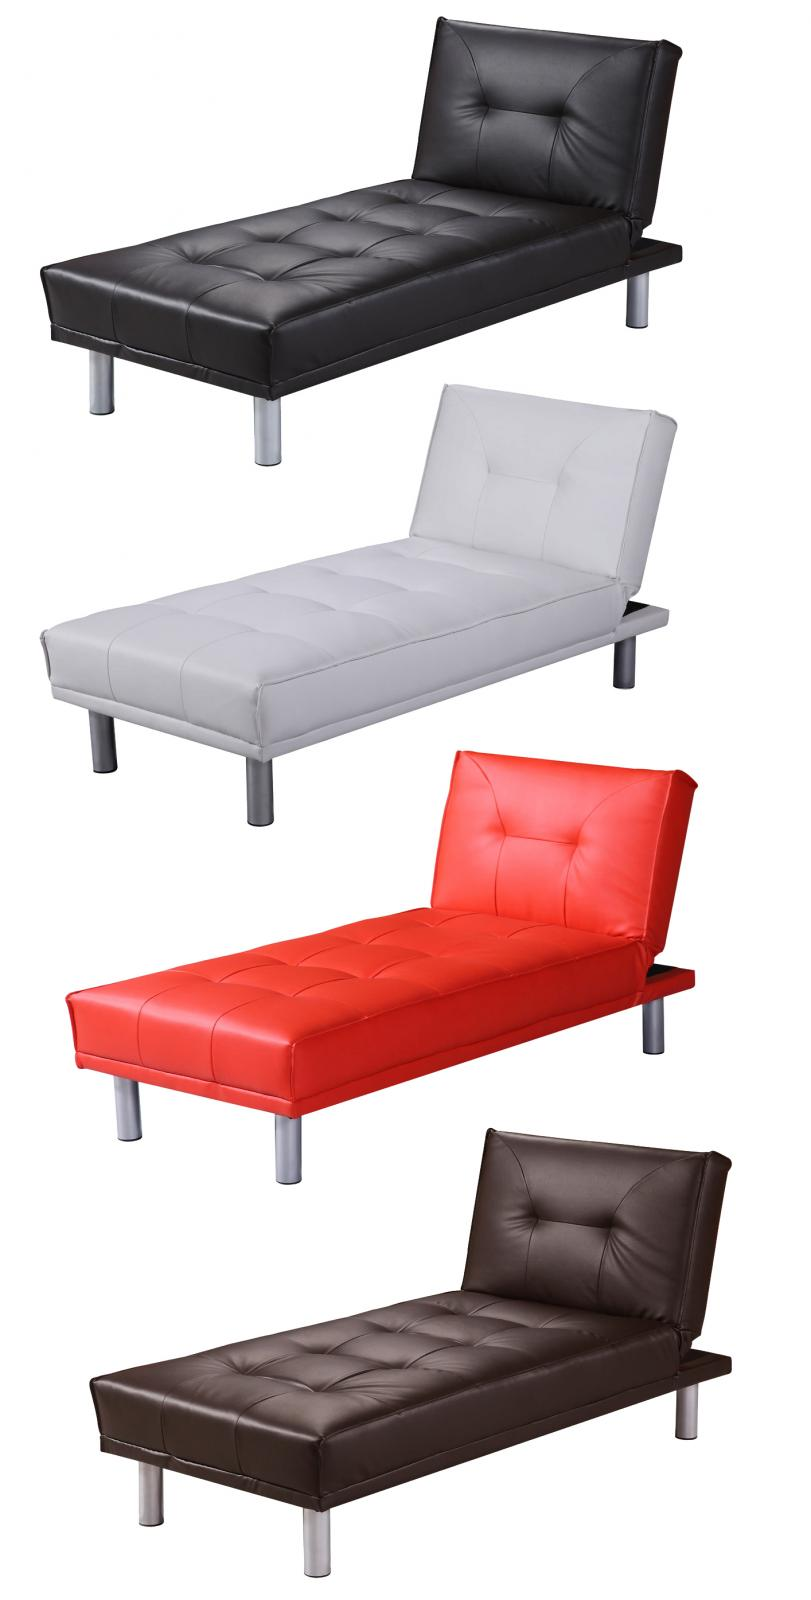 Chaise longue 1 seater single chair sofa bed faux leather for Chaise longue sofa bed ebay